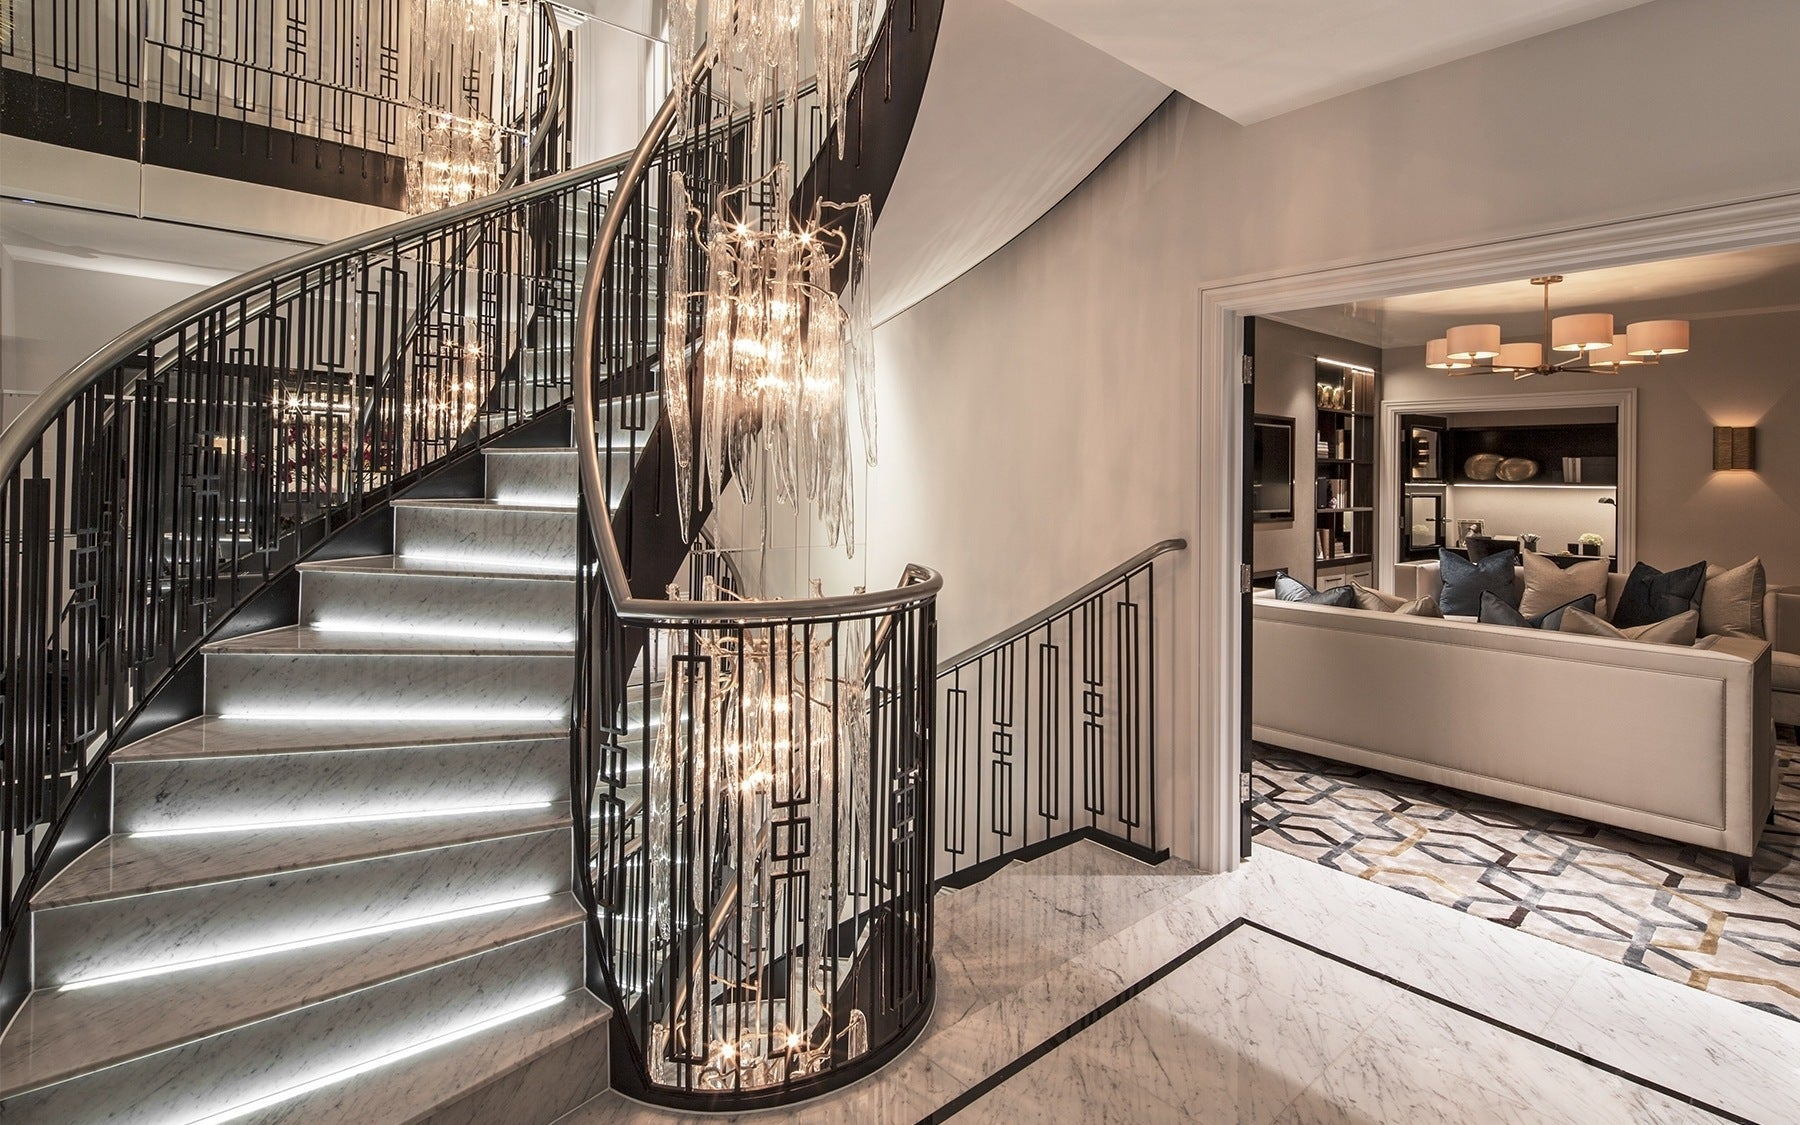 Beautiful Staircase Ideas For Your Home - half-turn staircase - LuxDeco.com Style Guide